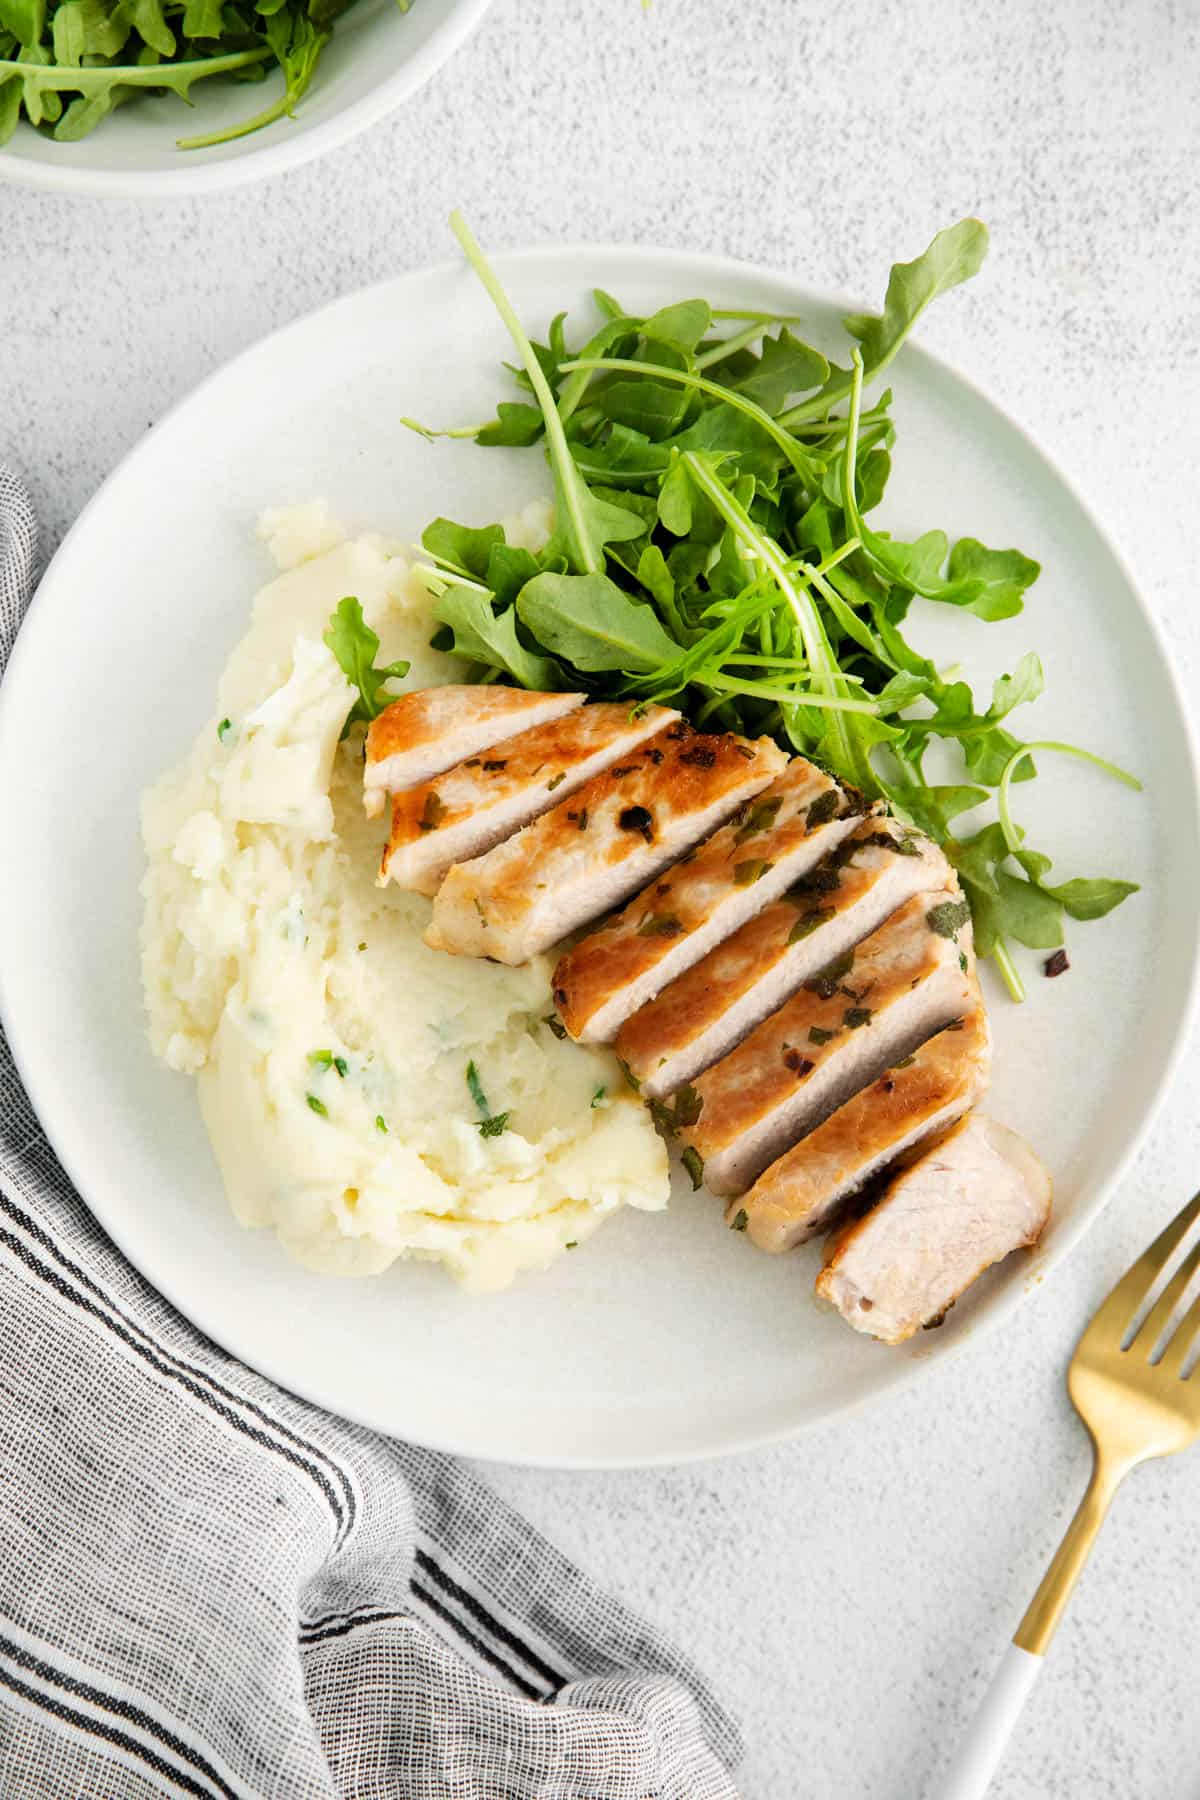 one cut pork chop on a plate with mashed potatoes and greens